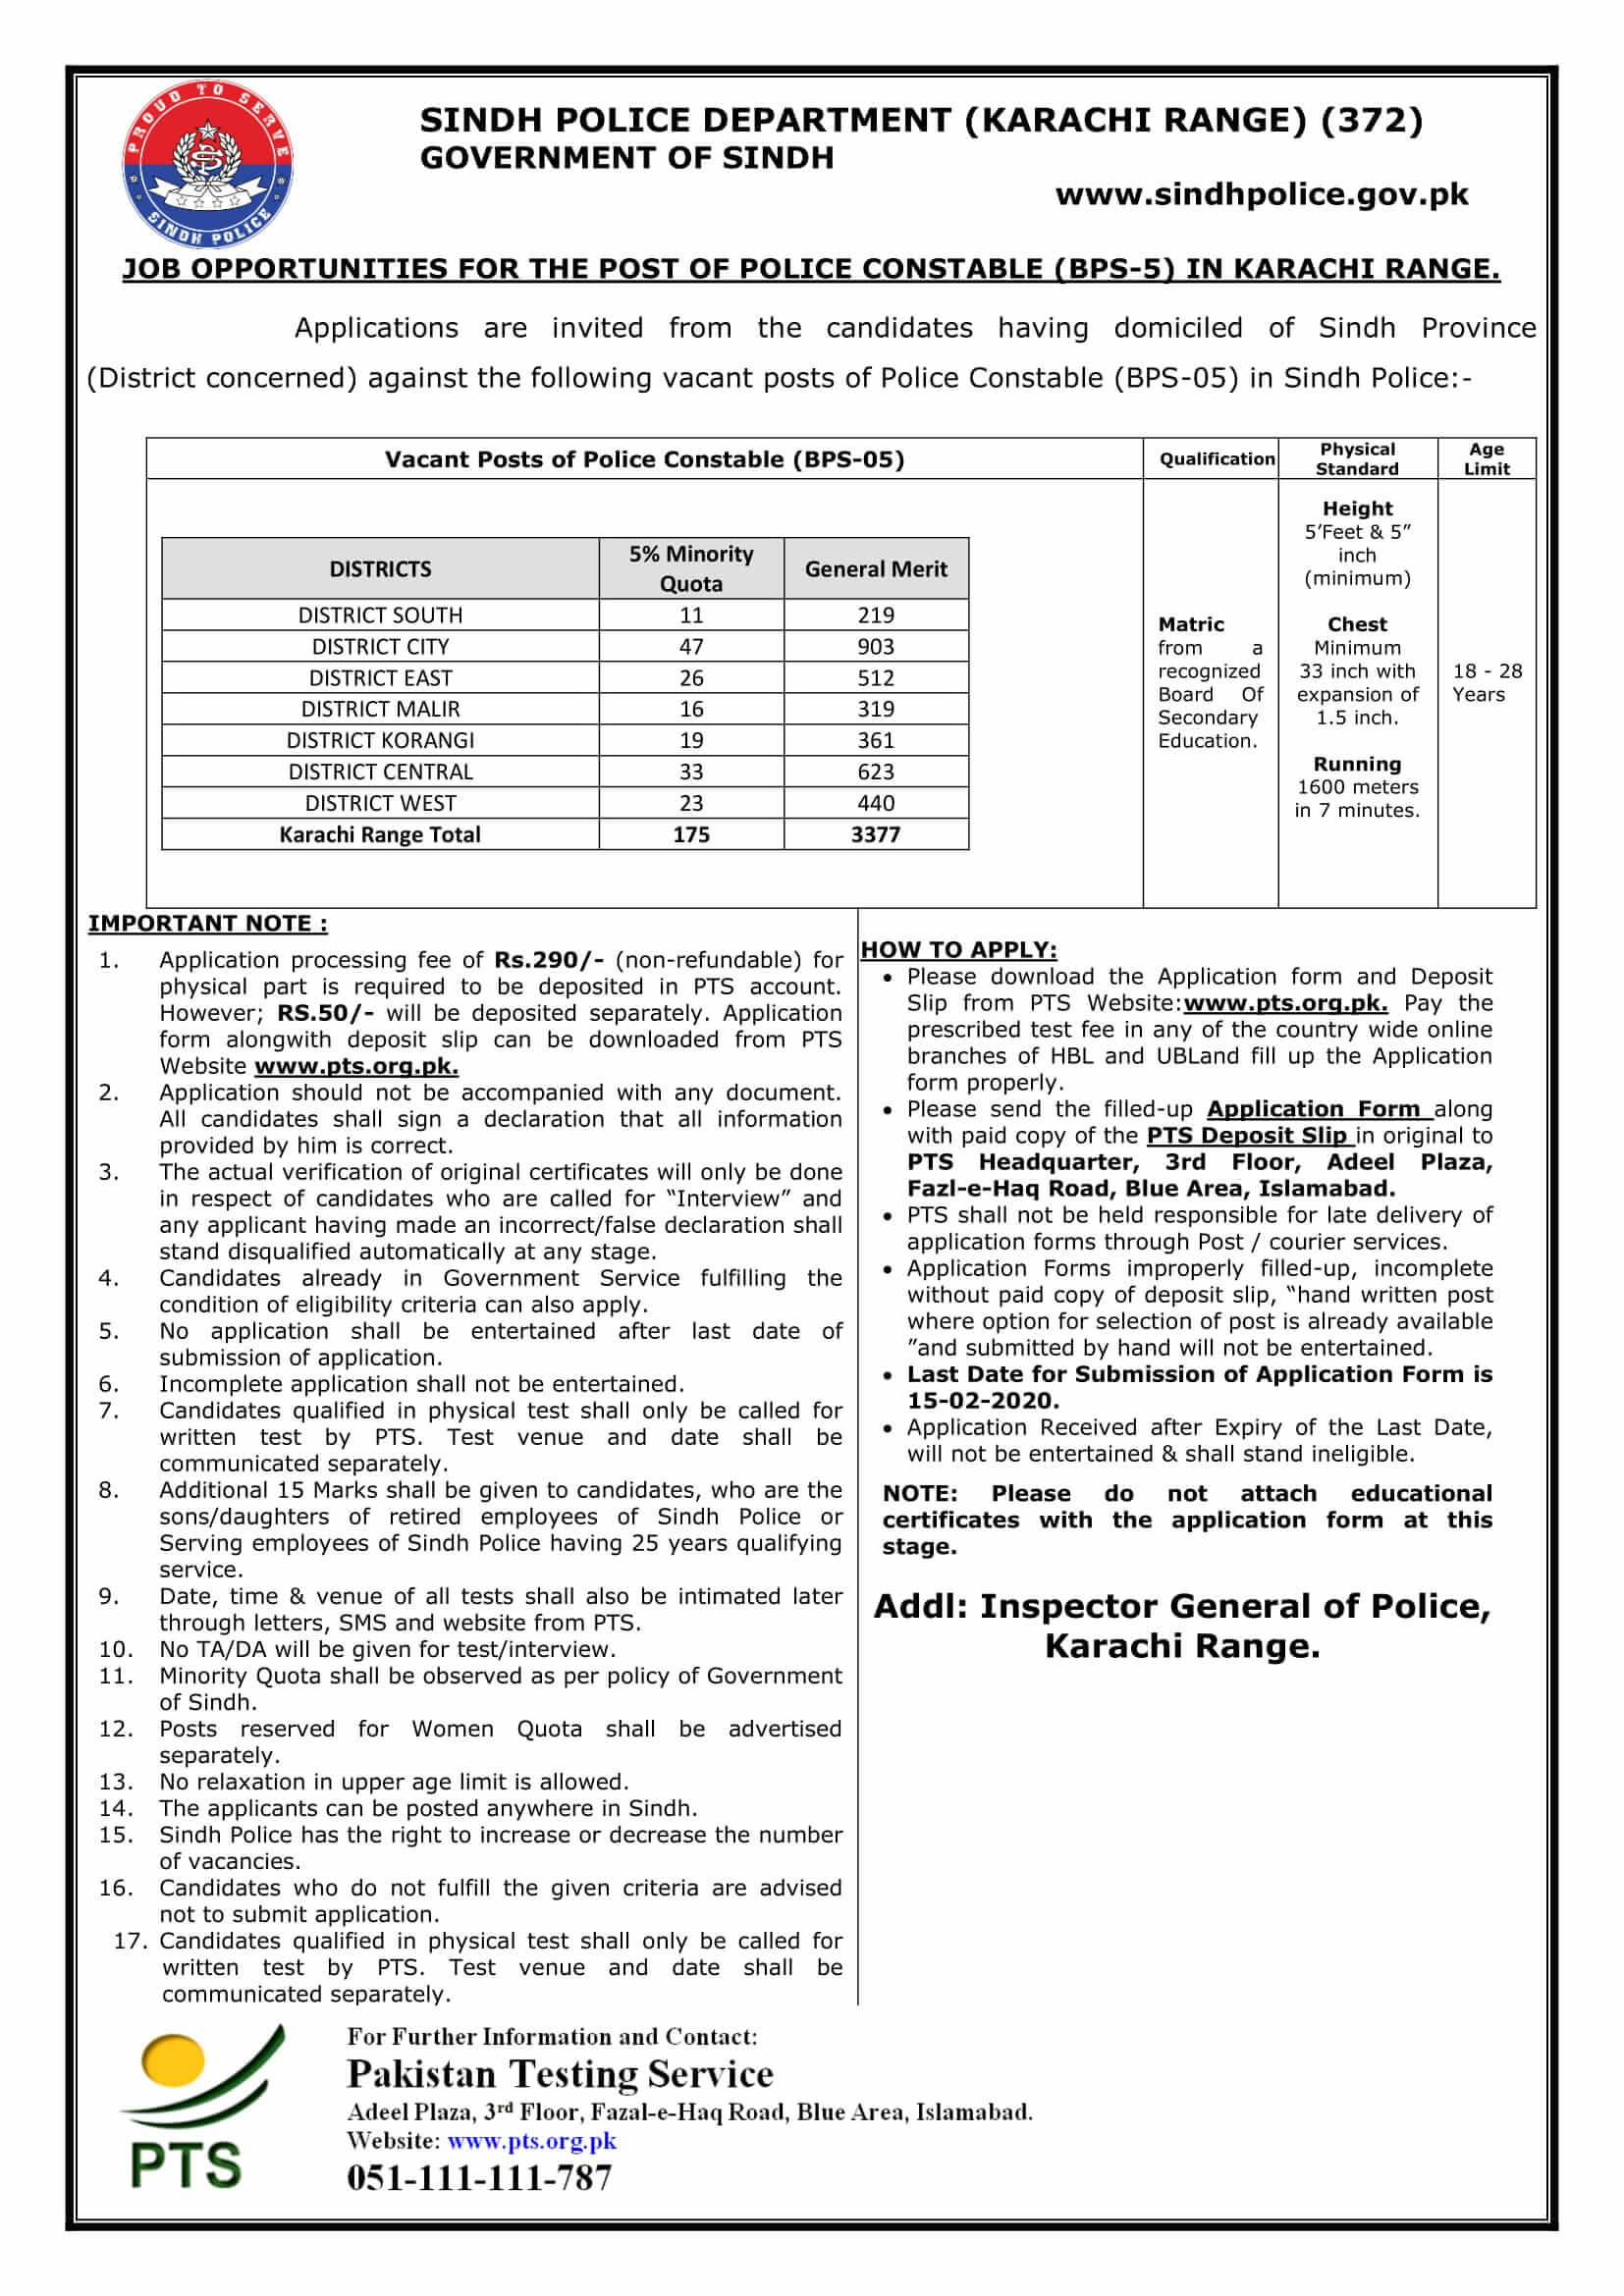 Sindh Police Department Karachi Region Jobs PTS Roll No Slip